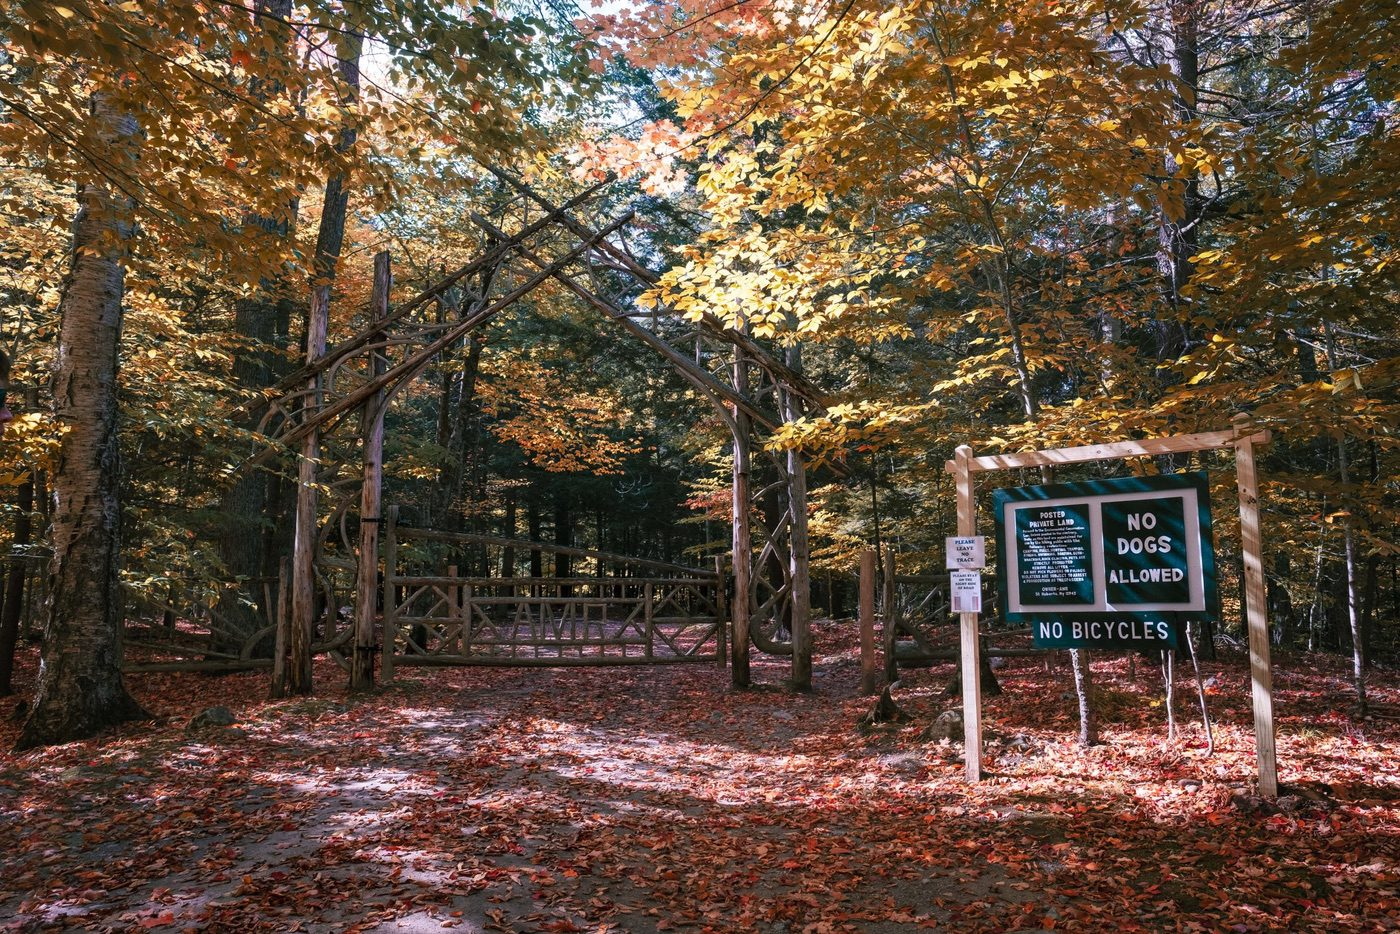 Pine entrance gate to Lake Road on the Adirondack Mountain Reserve